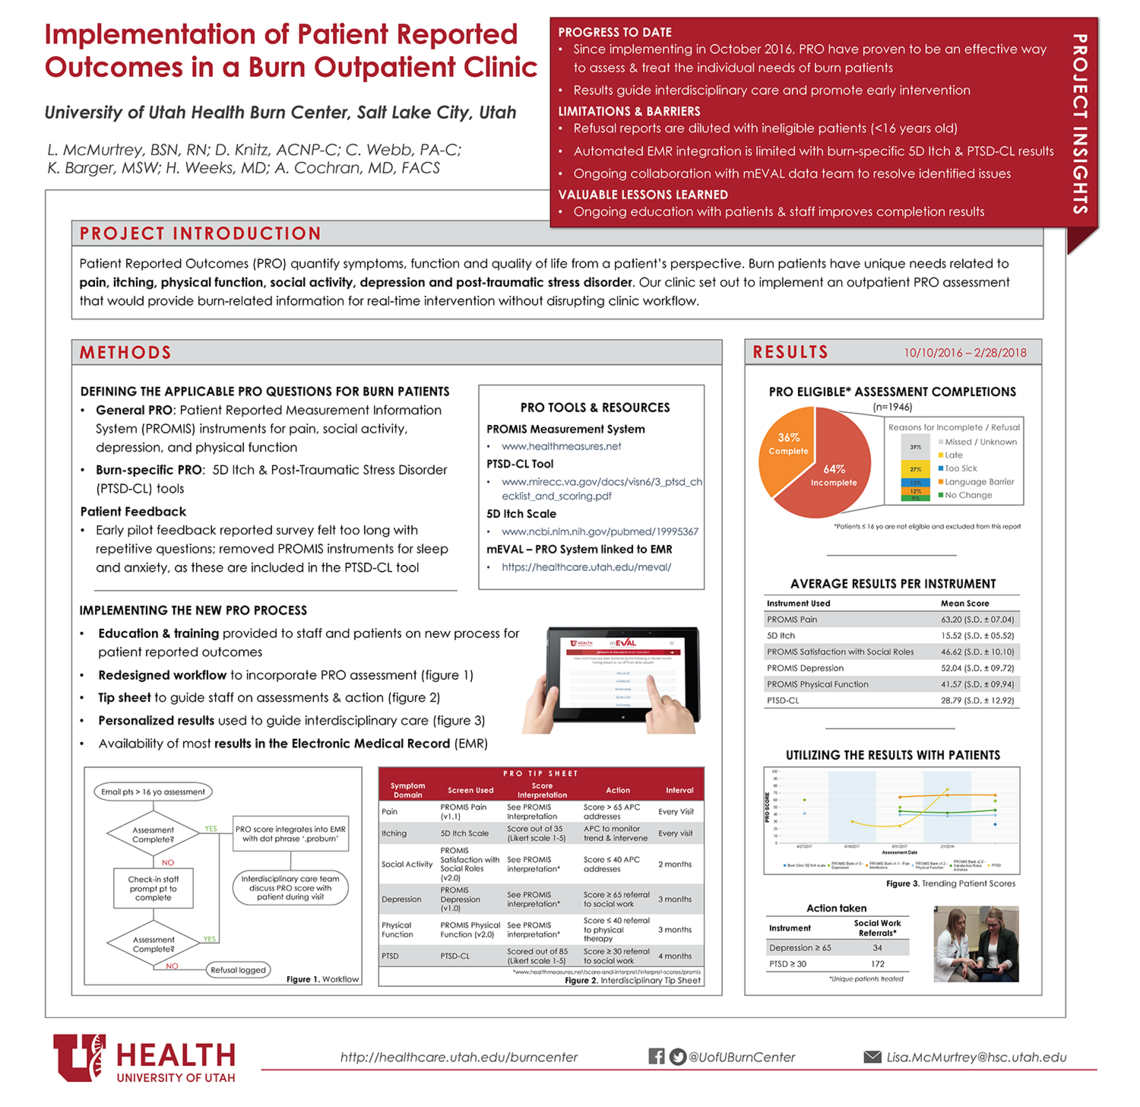 example uofuhealth implementation of patient reported outcomes in a burn outpatient clinic